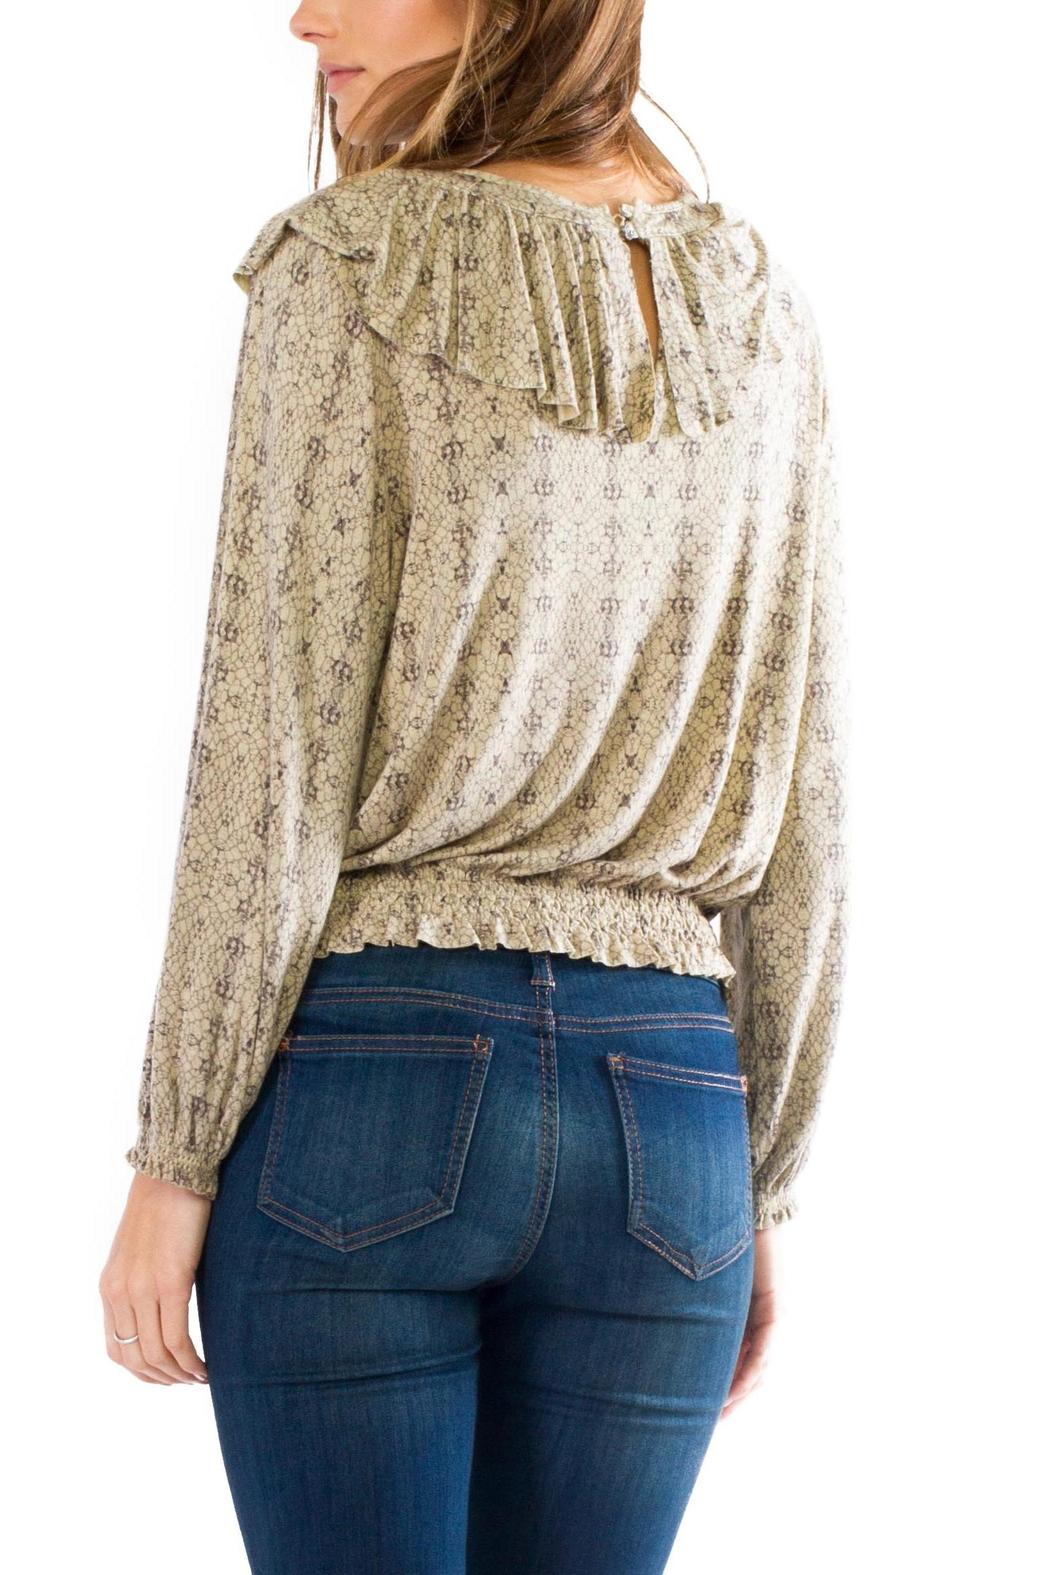 Anama Western Printed Blouse - Front Full Image